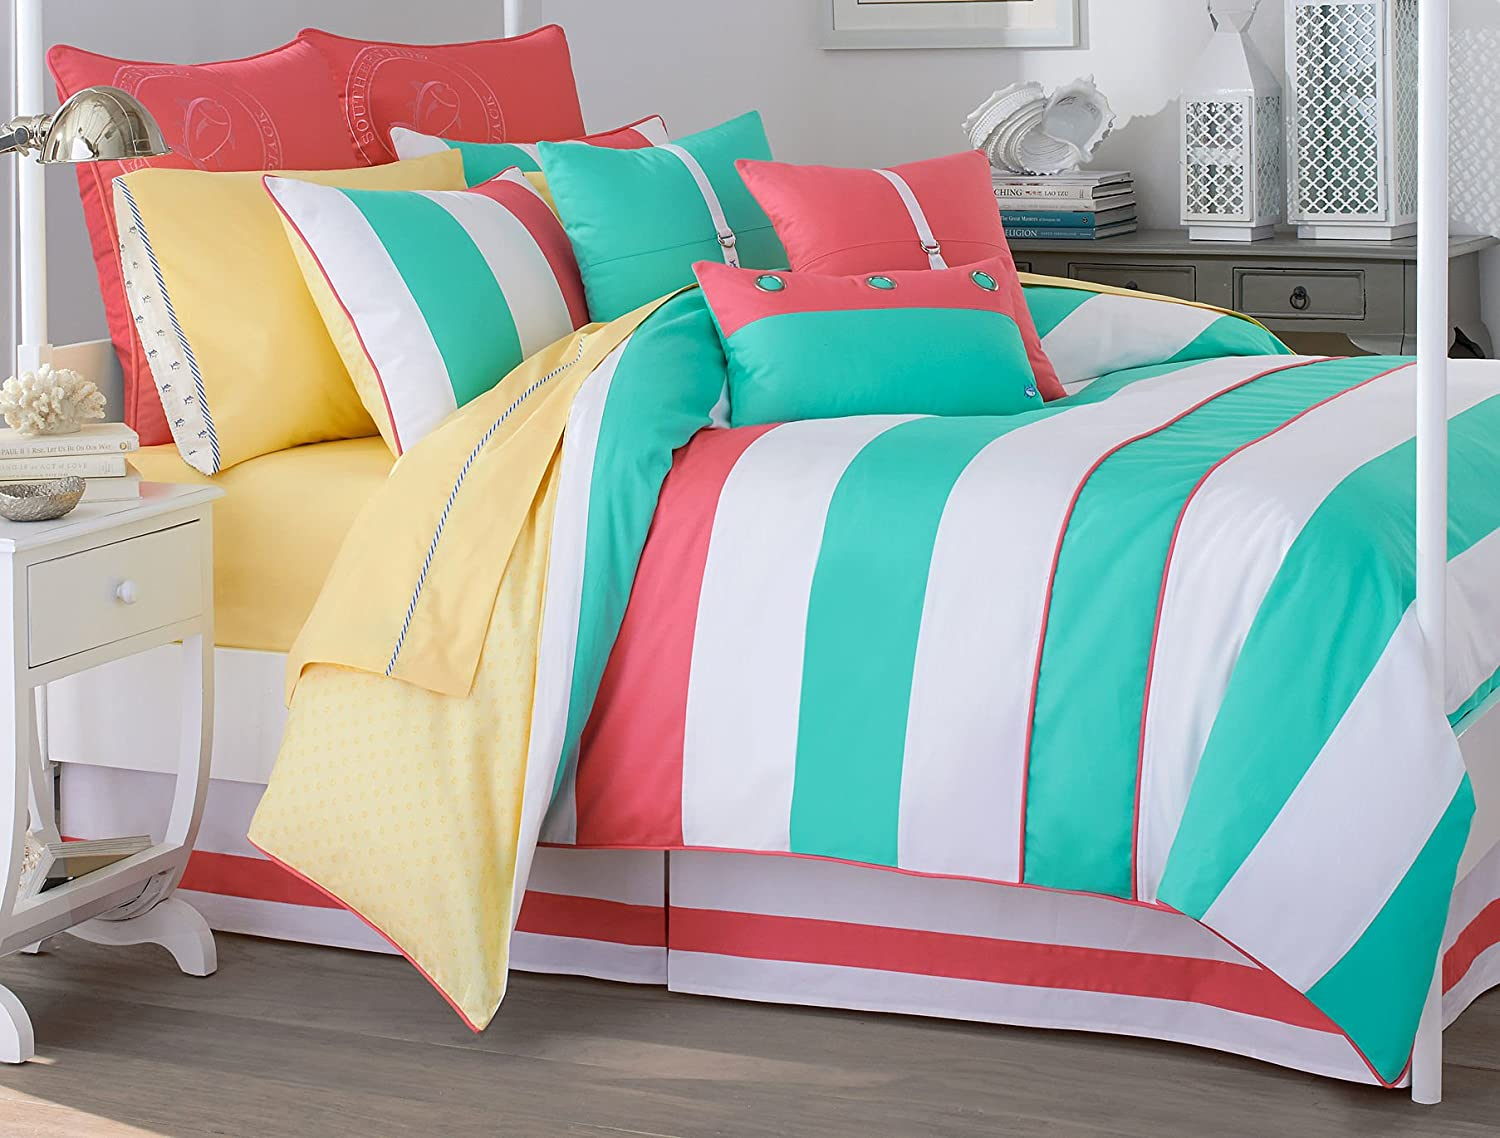 amazoncom southern tide cabana stripe queen comforter set home  - amazoncom southern tide cabana stripe queen comforter set home  kitchen